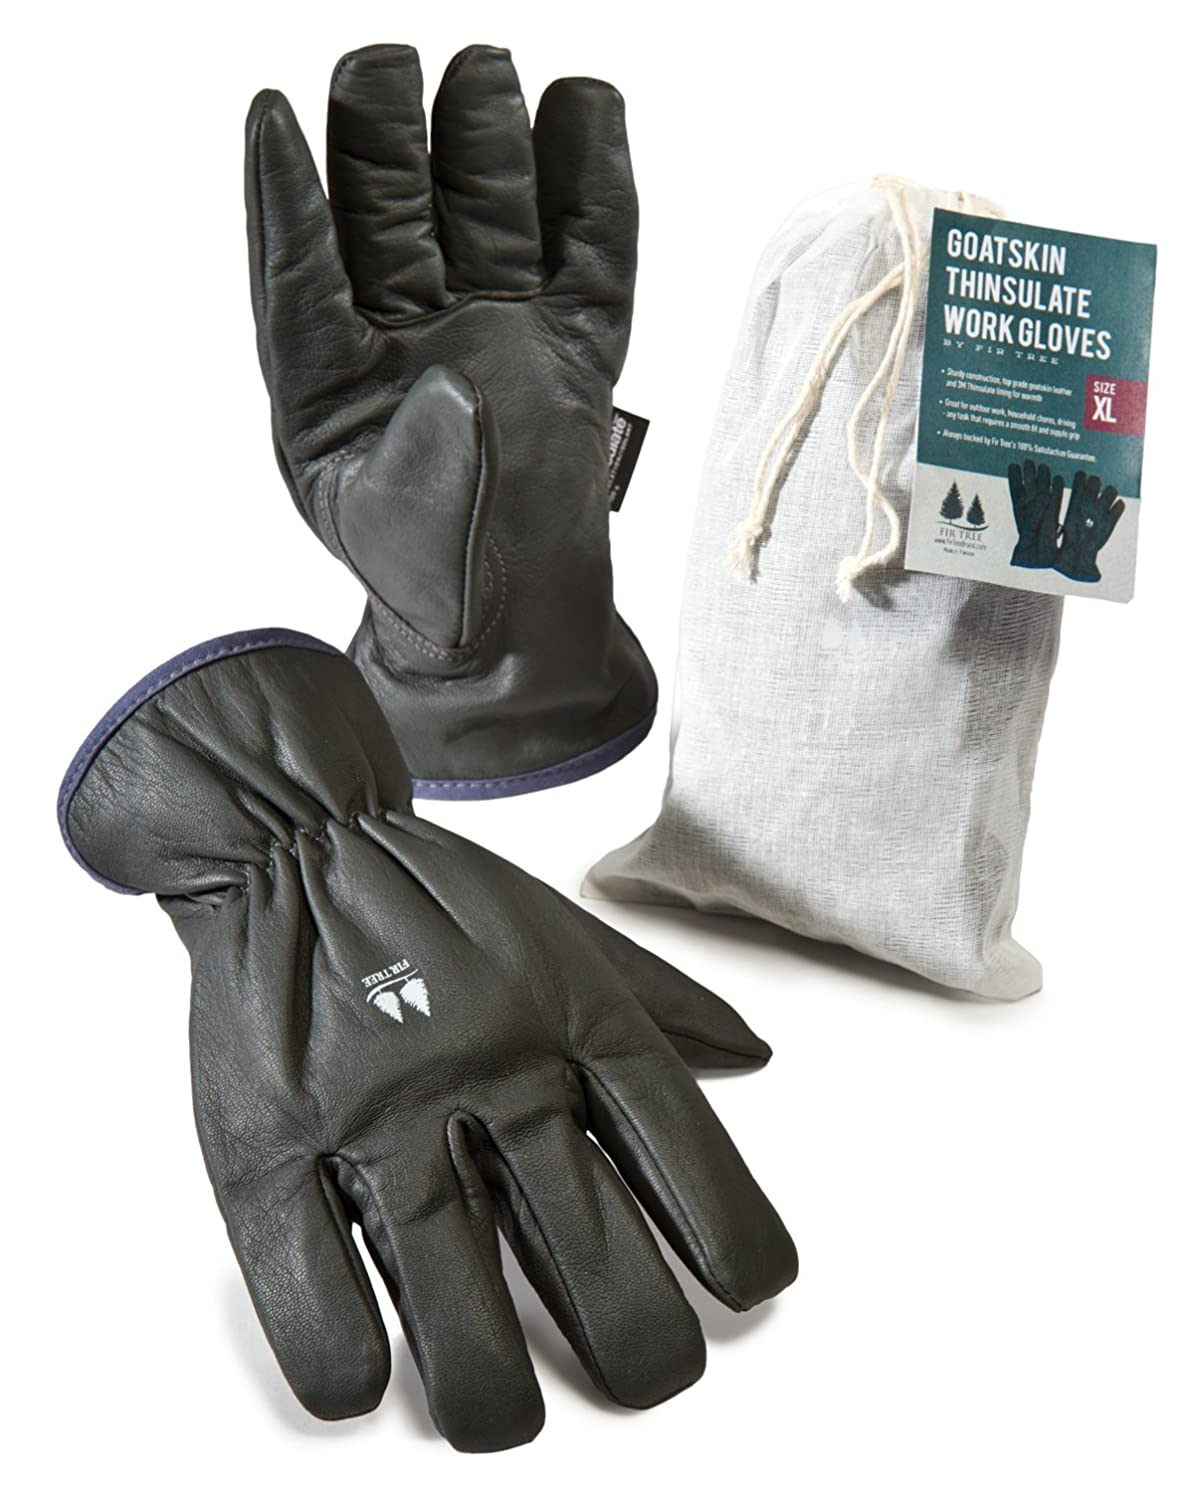 Insulated leather work gloves amazon - Amazon Com Insulated Work Gloves Dark Grey Goatskin Leather Gloves Lined With 3m Thinsulate For Men And Women See Size Chart Pictured At Left